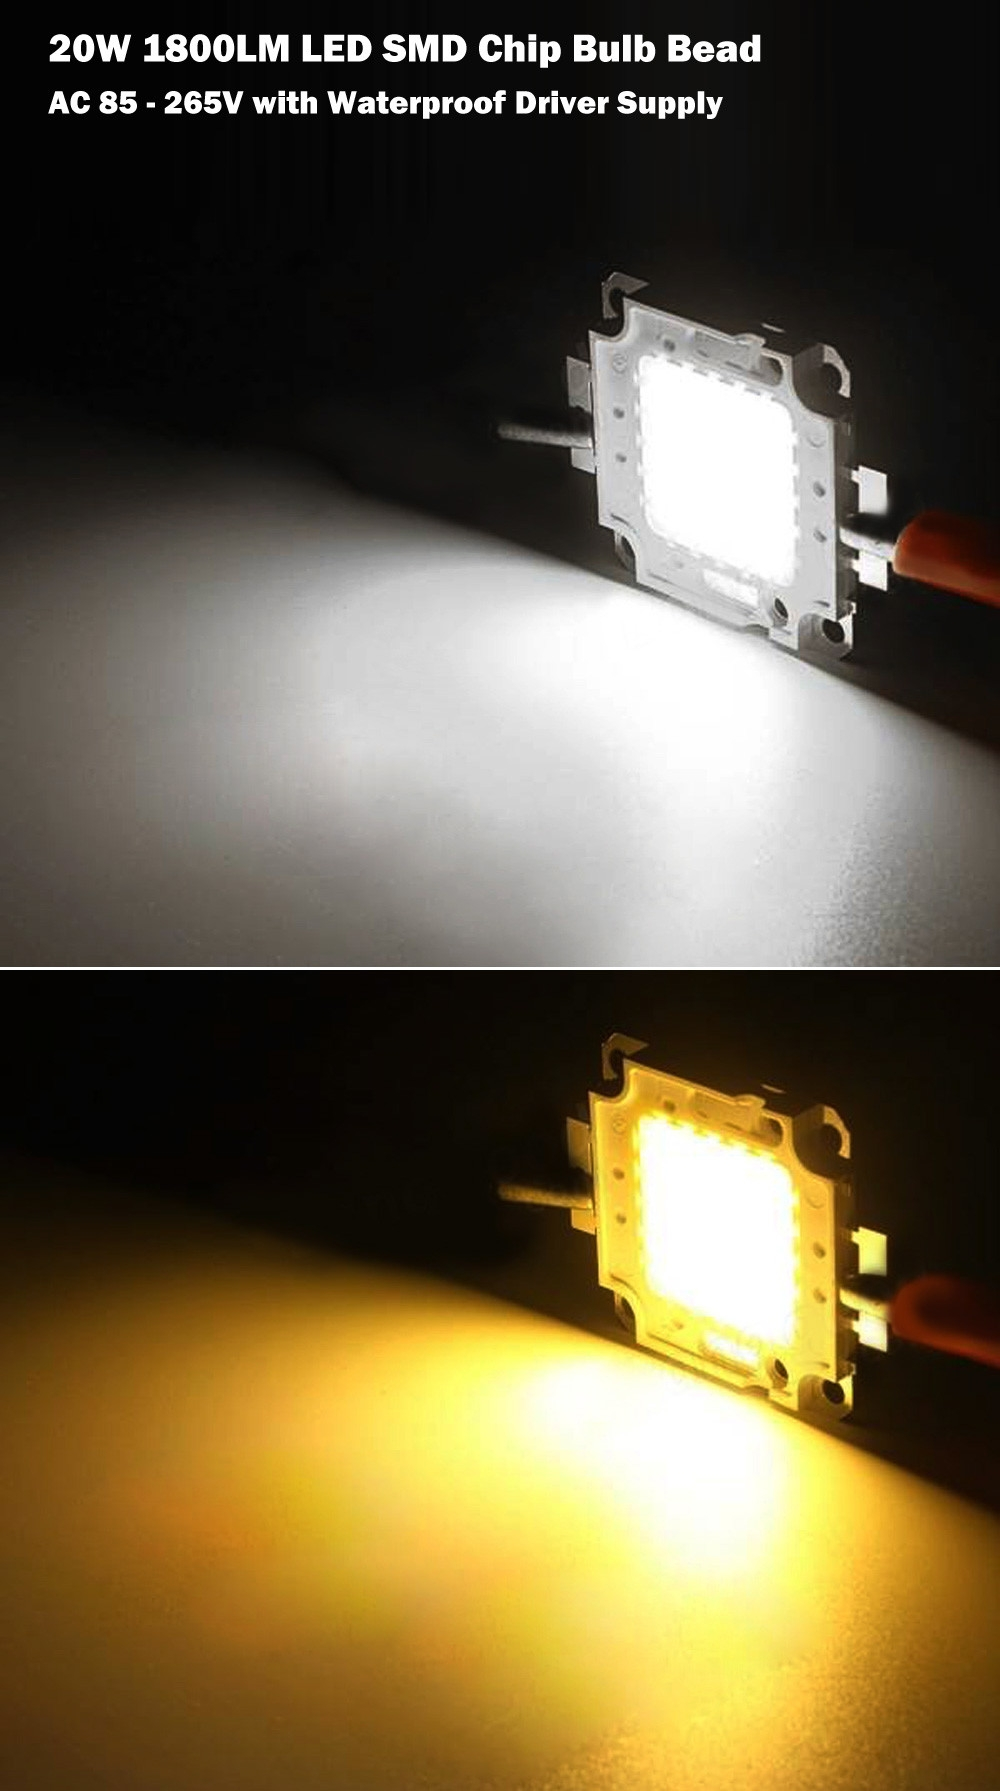 AC 85 - 265V 20W 1800LM LED SMD Chip Bulb Bead with Waterproof Driver Supply